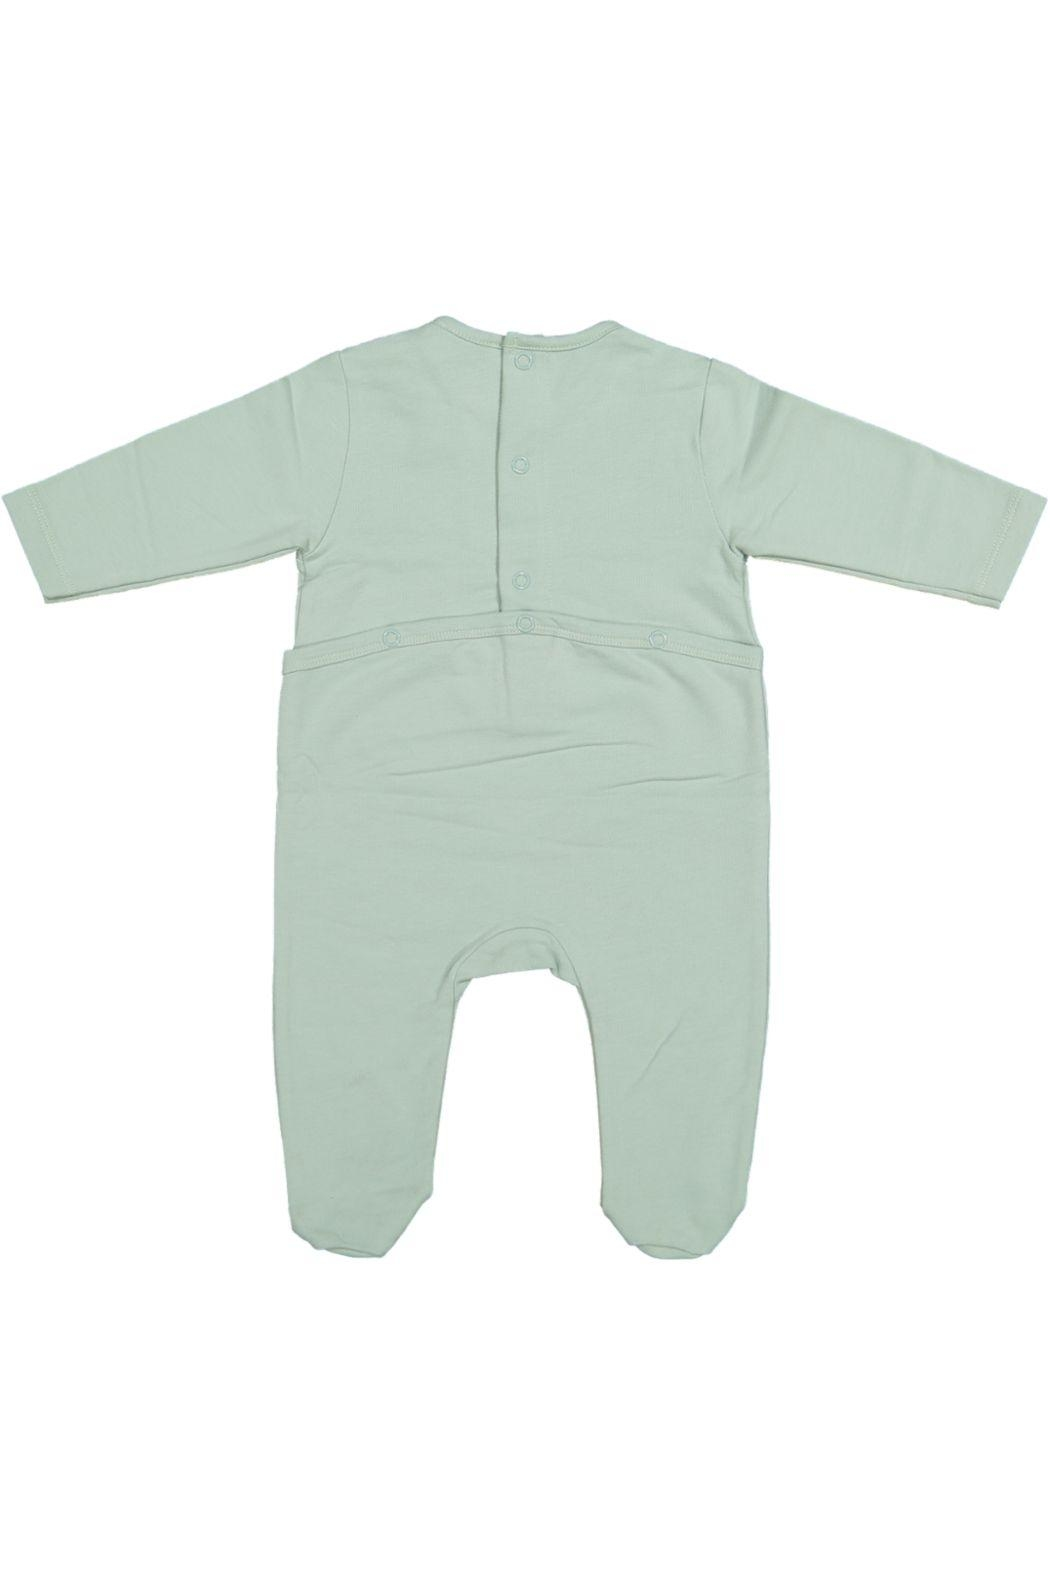 Juste Clé Mint Green Planet Dot Onesie - Front Full Image